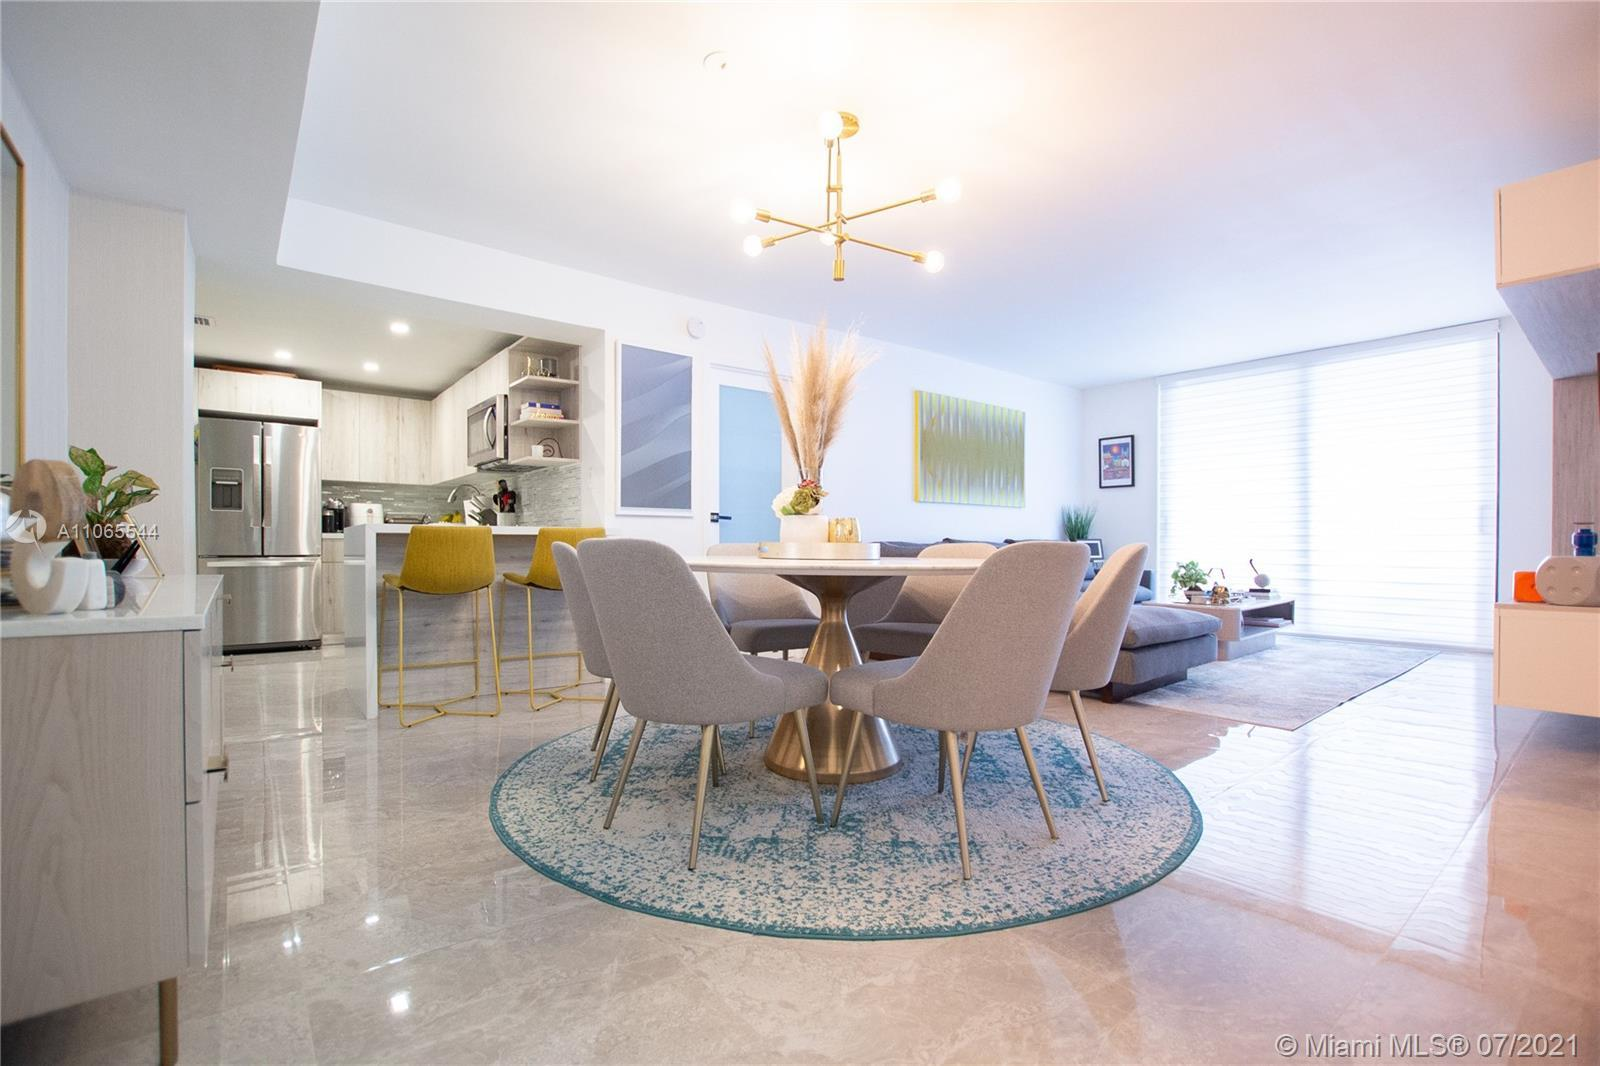 WONT LAST!!! Ultra-luxury RENOVATED APARTMENT. Including balcony, 2 master suites, 2 bathrooms, tile